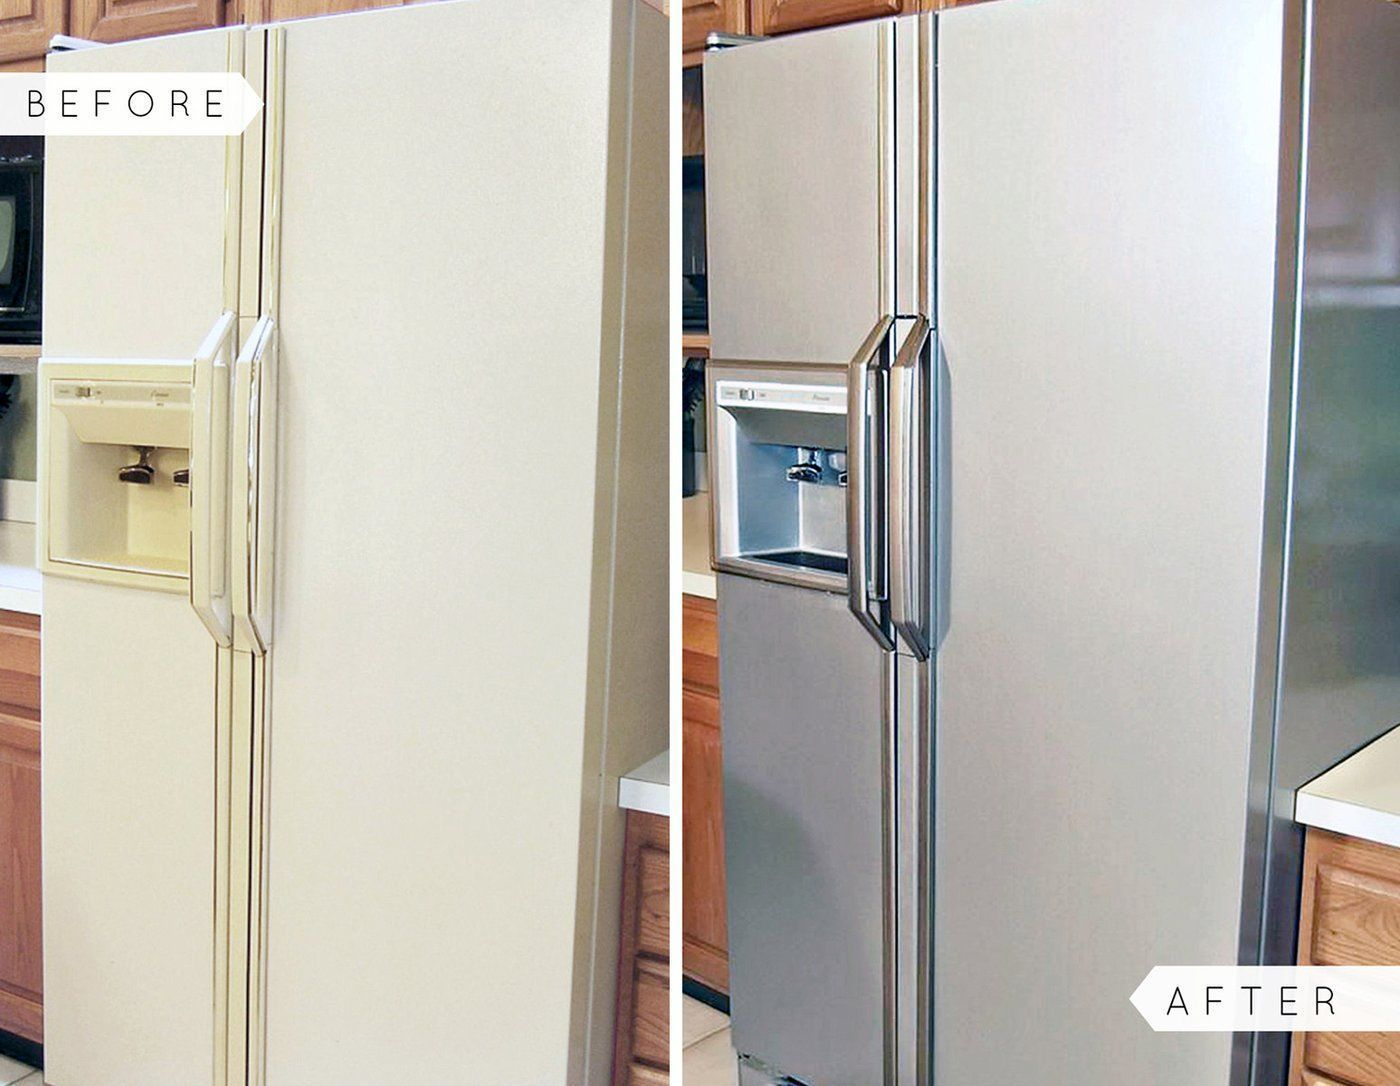 Liquid Stainless Steel Fridge Kit Stainless Steel Paint Budget Kitchen Makeover Kitchen Cabinets Makeover